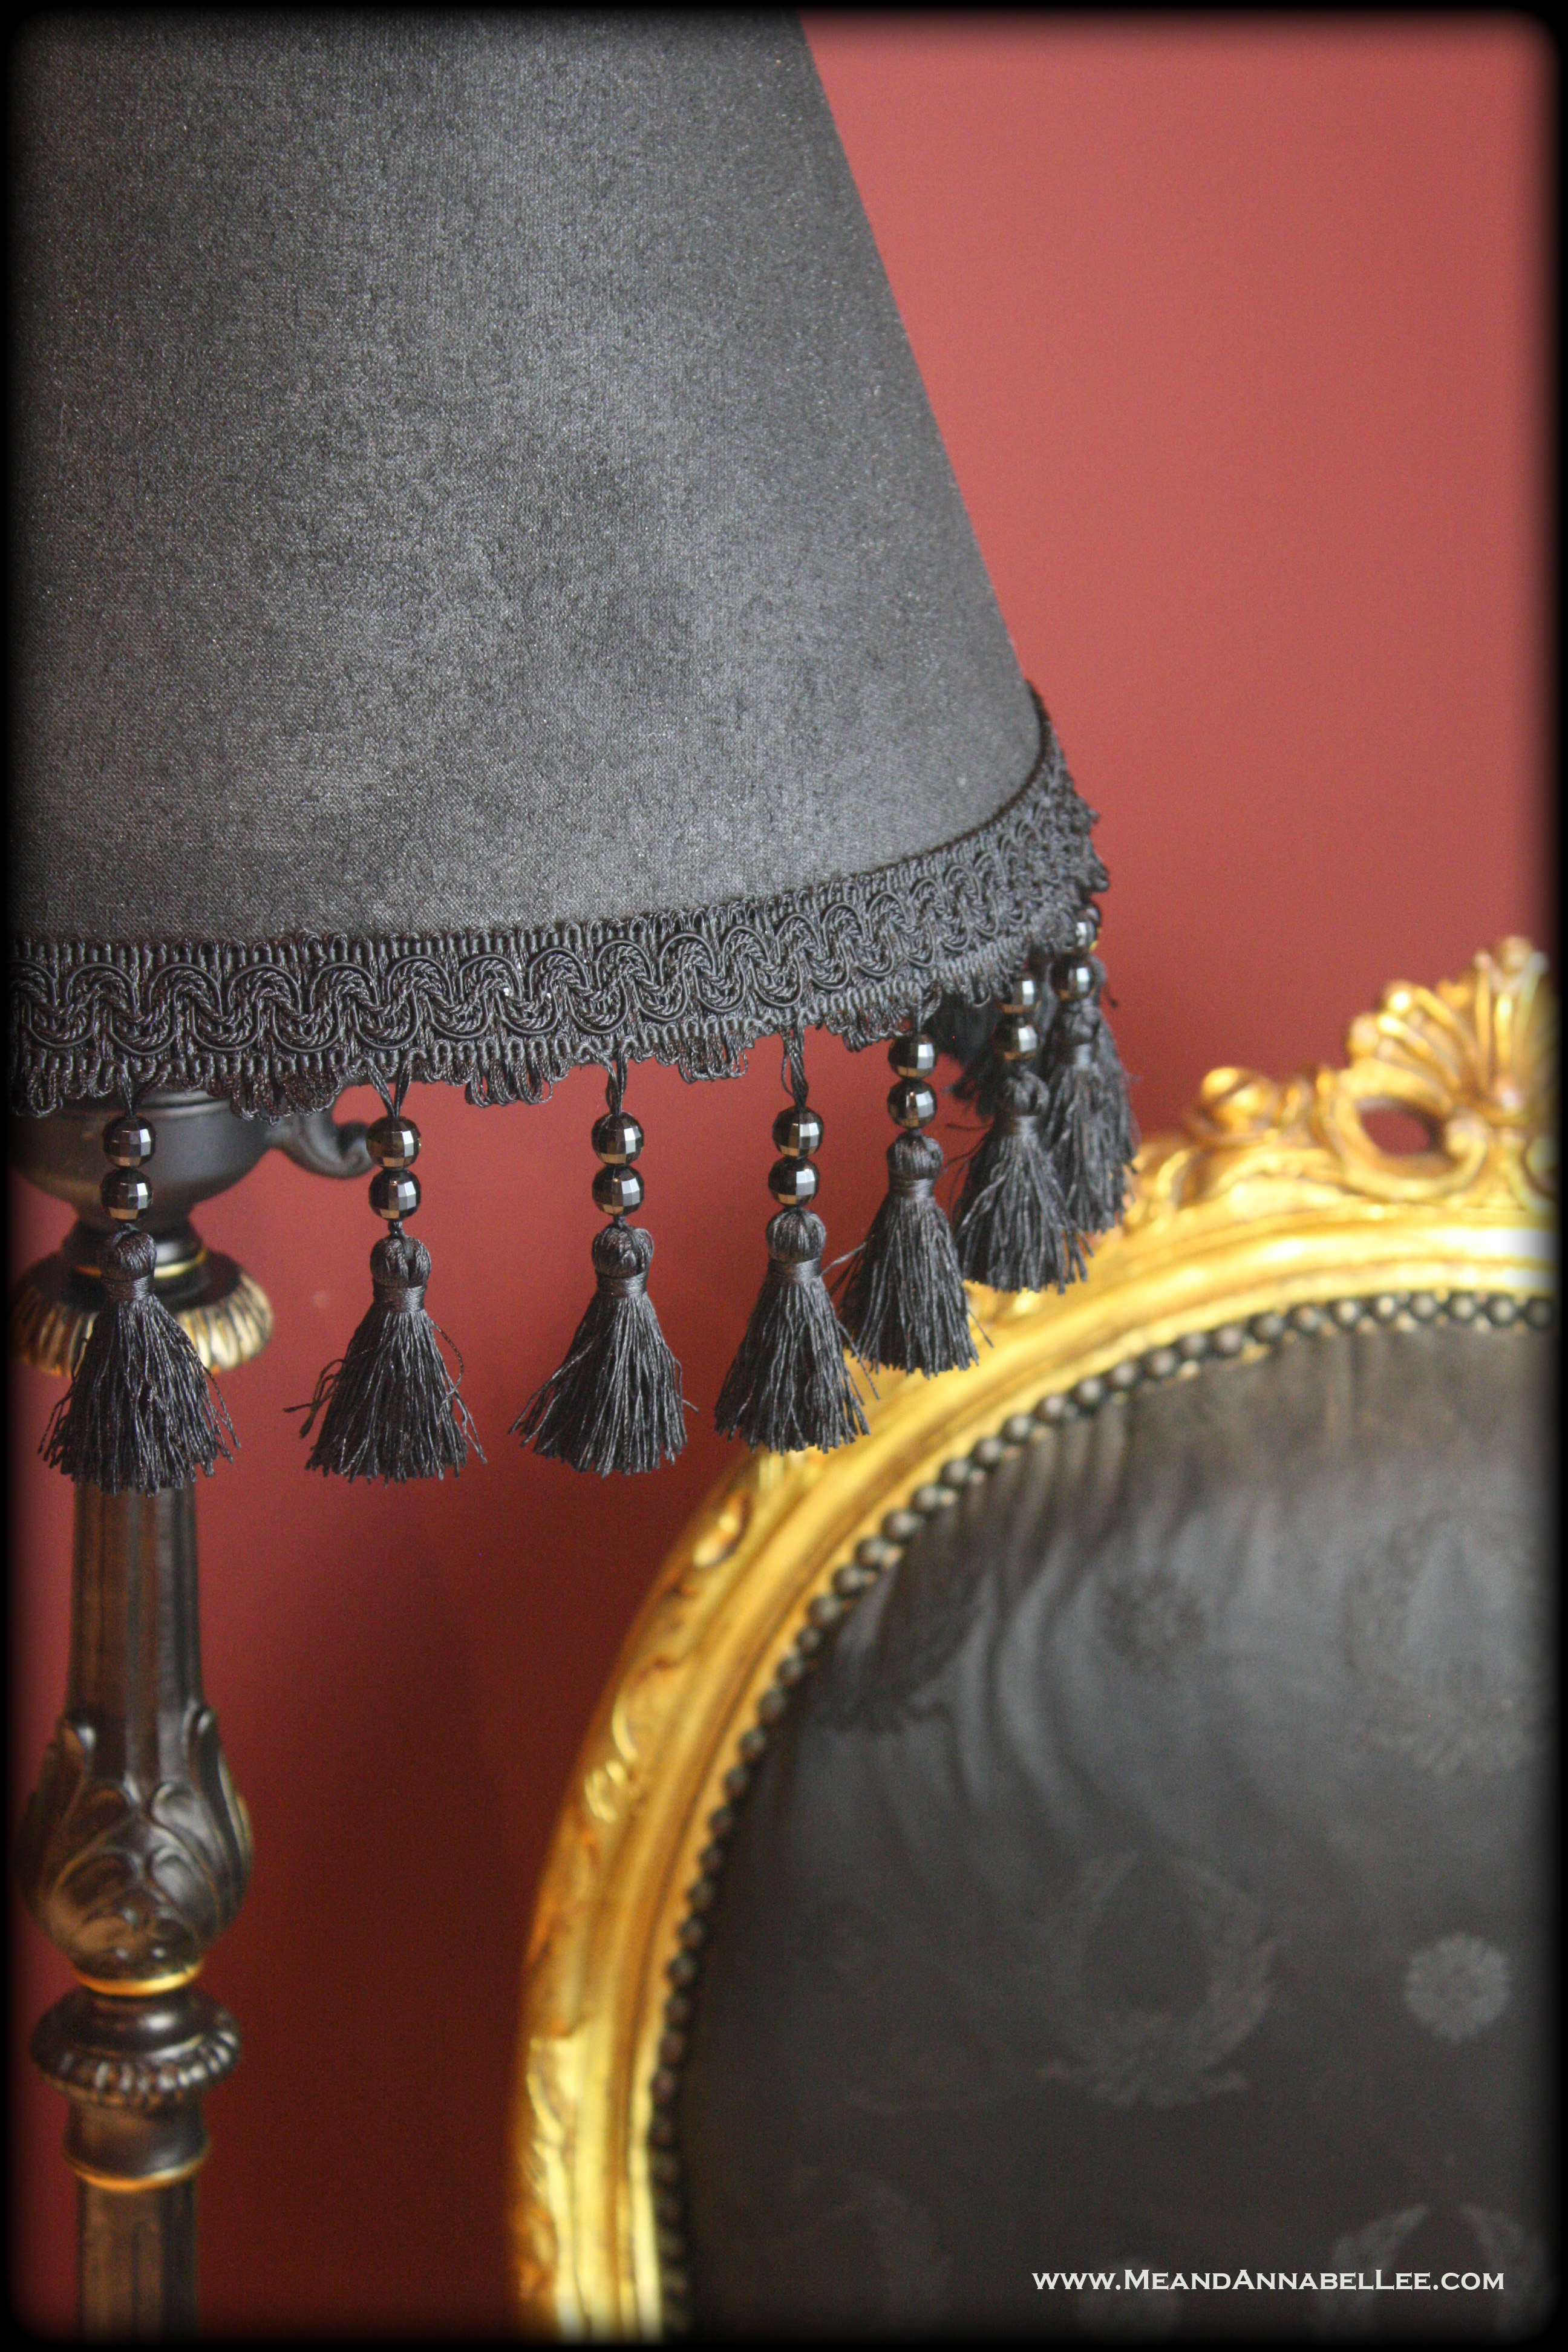 Diy victorian gothic black lamp shade floor lamp goth home decor diy victorian gothic black lamp shade black gold goth home decor beaded tassel aloadofball Image collections